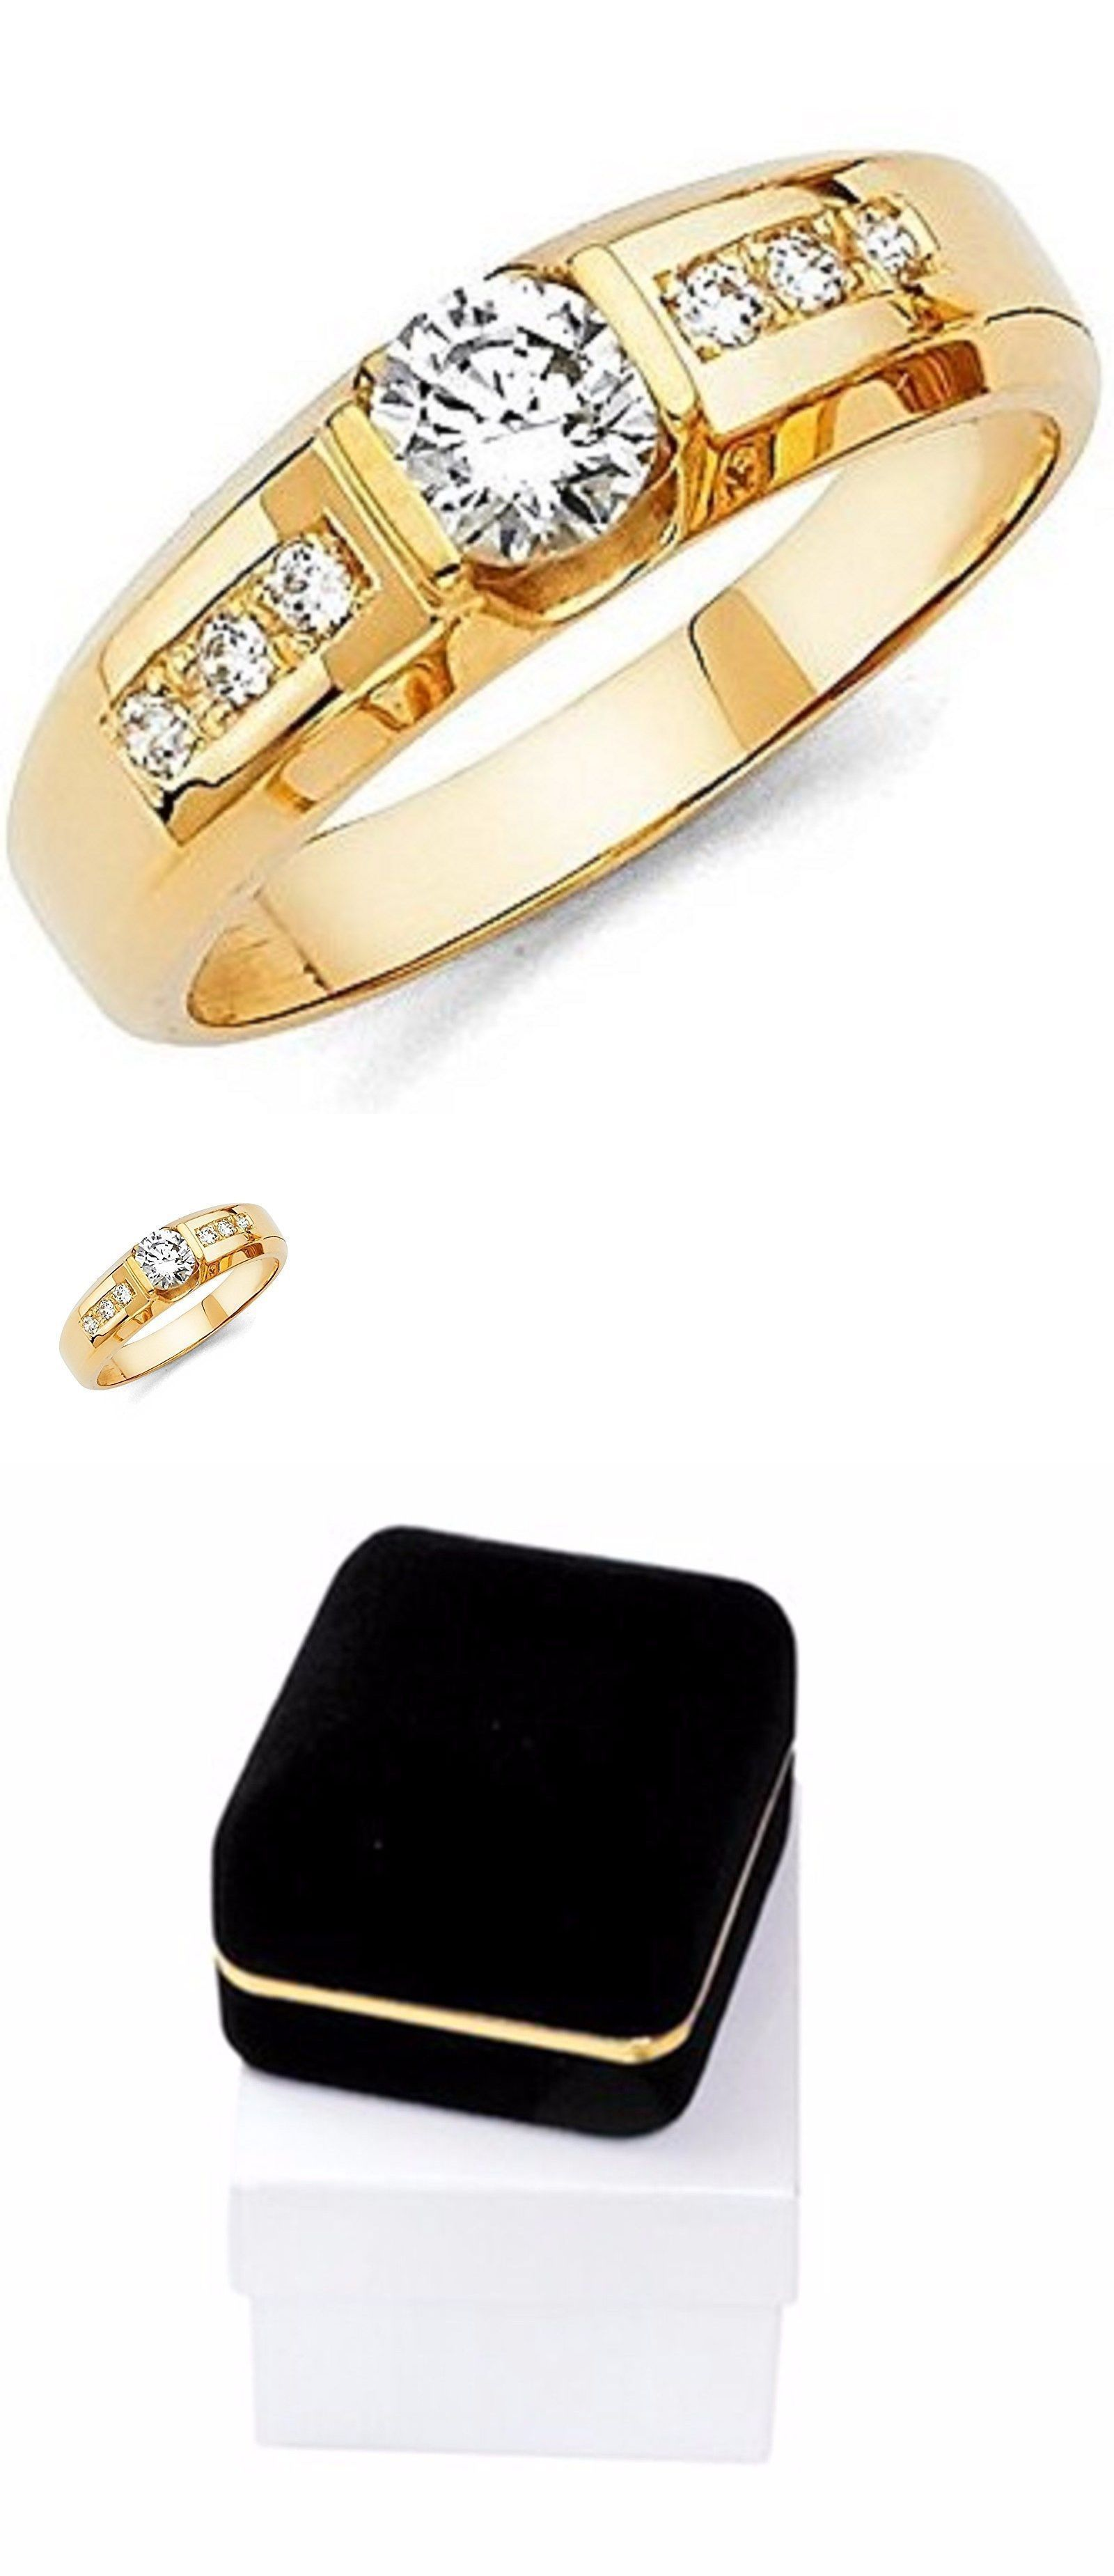 en timeless signet rings links man of ring vermeil hires rose london gb gold